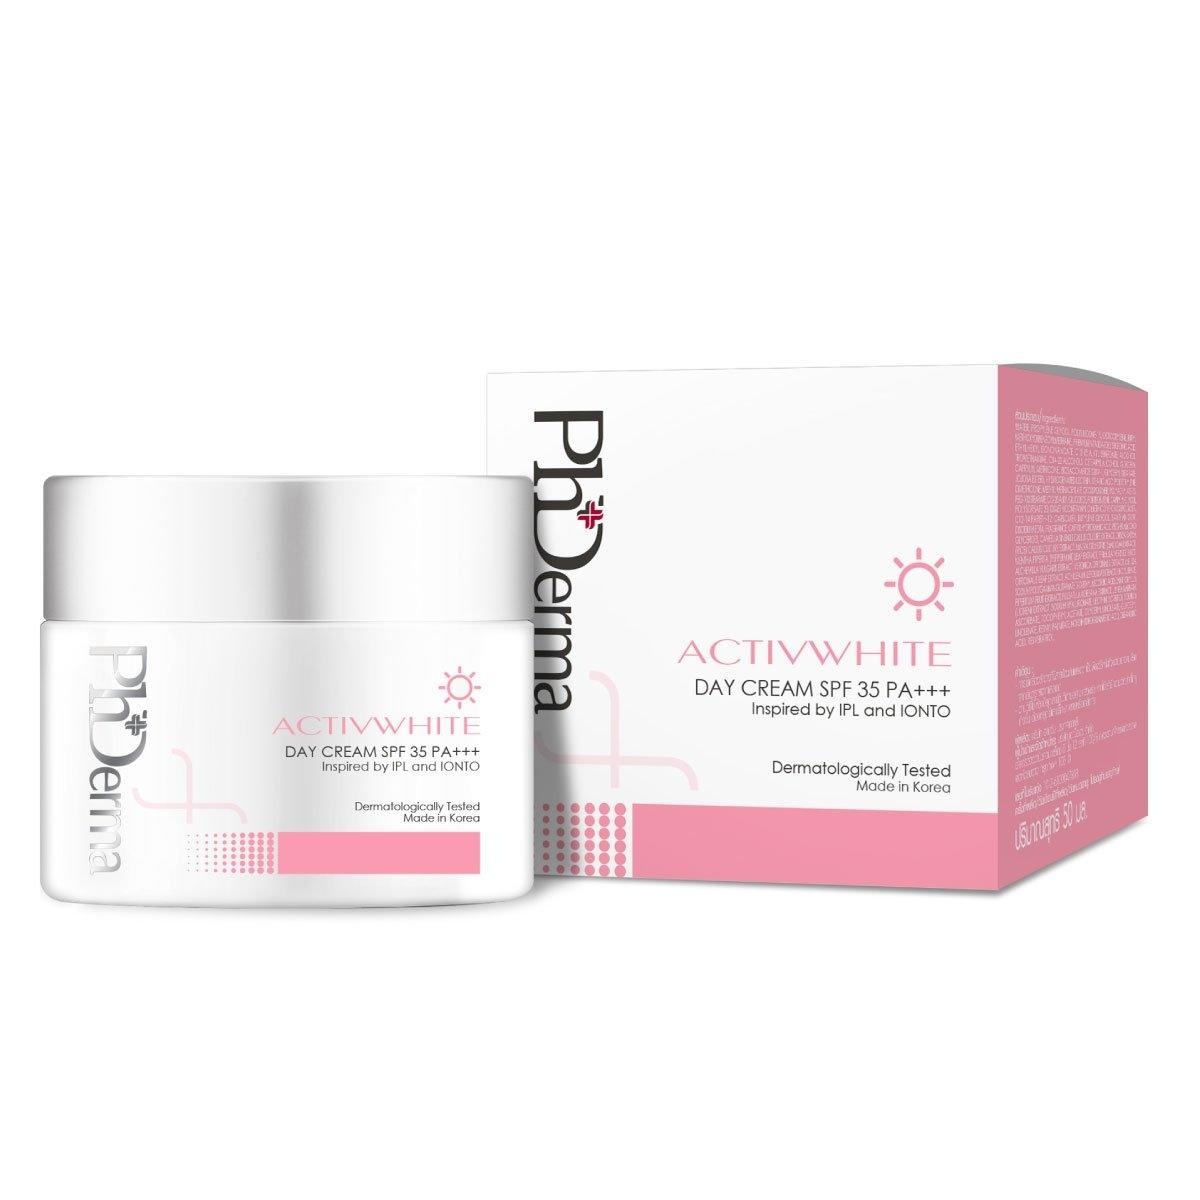 PhDerma Activwhite Day Cream SPF 35 PA+++ 50 ml.